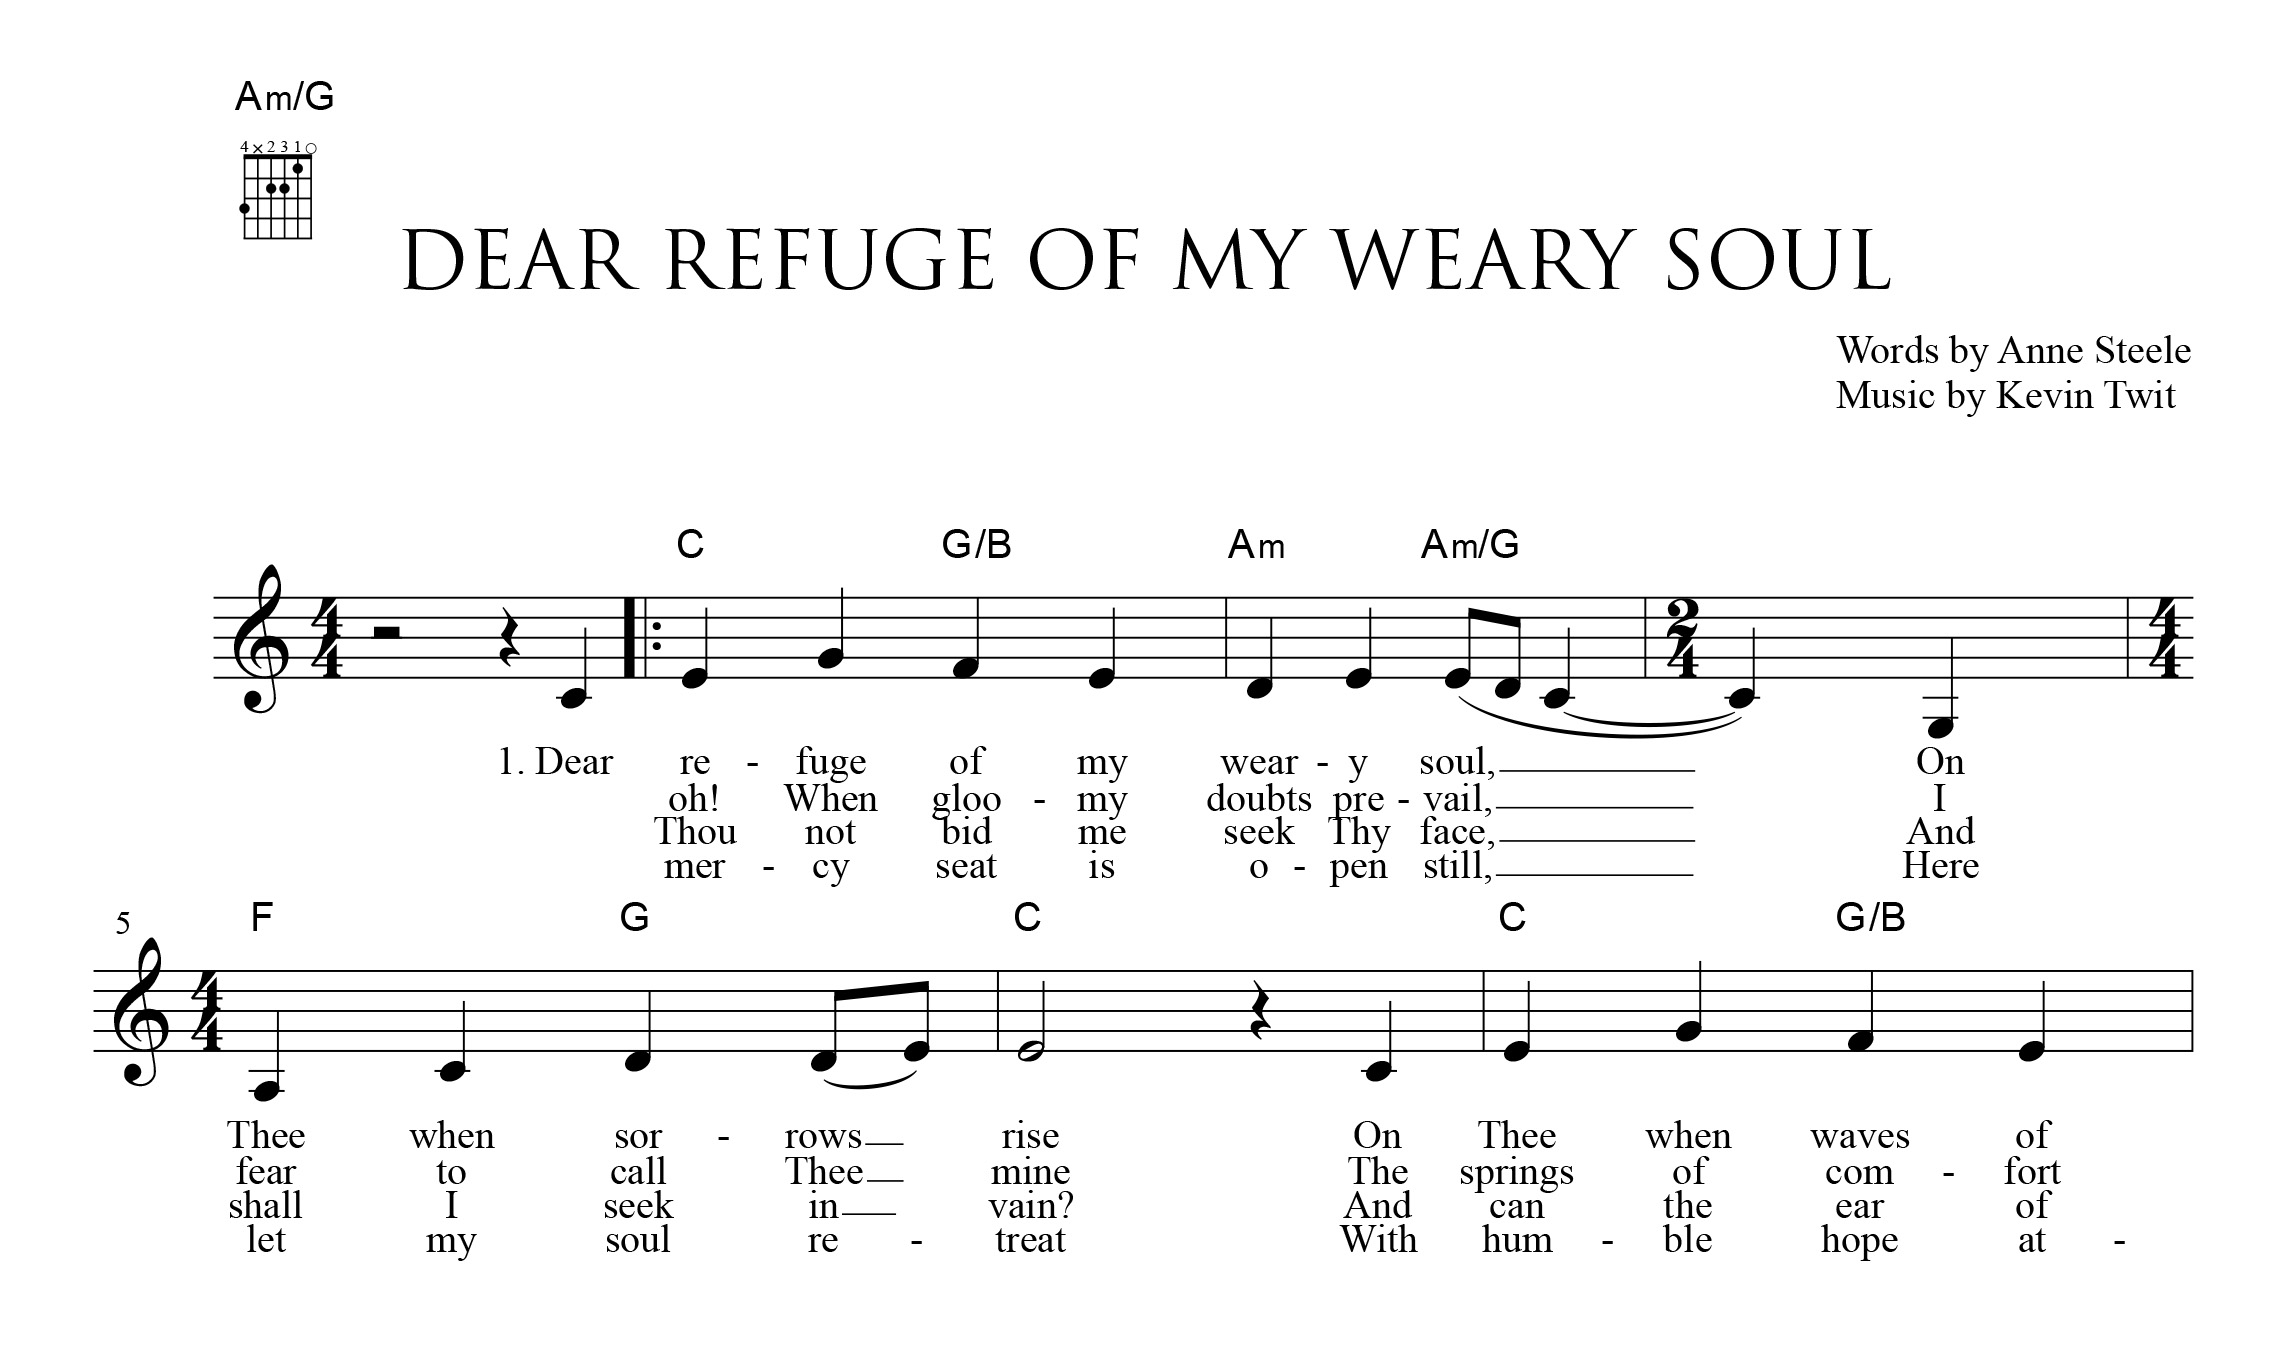 Fig. 3.  Music by Kevin Twit (excerpt), for Indelible Grace (2000).